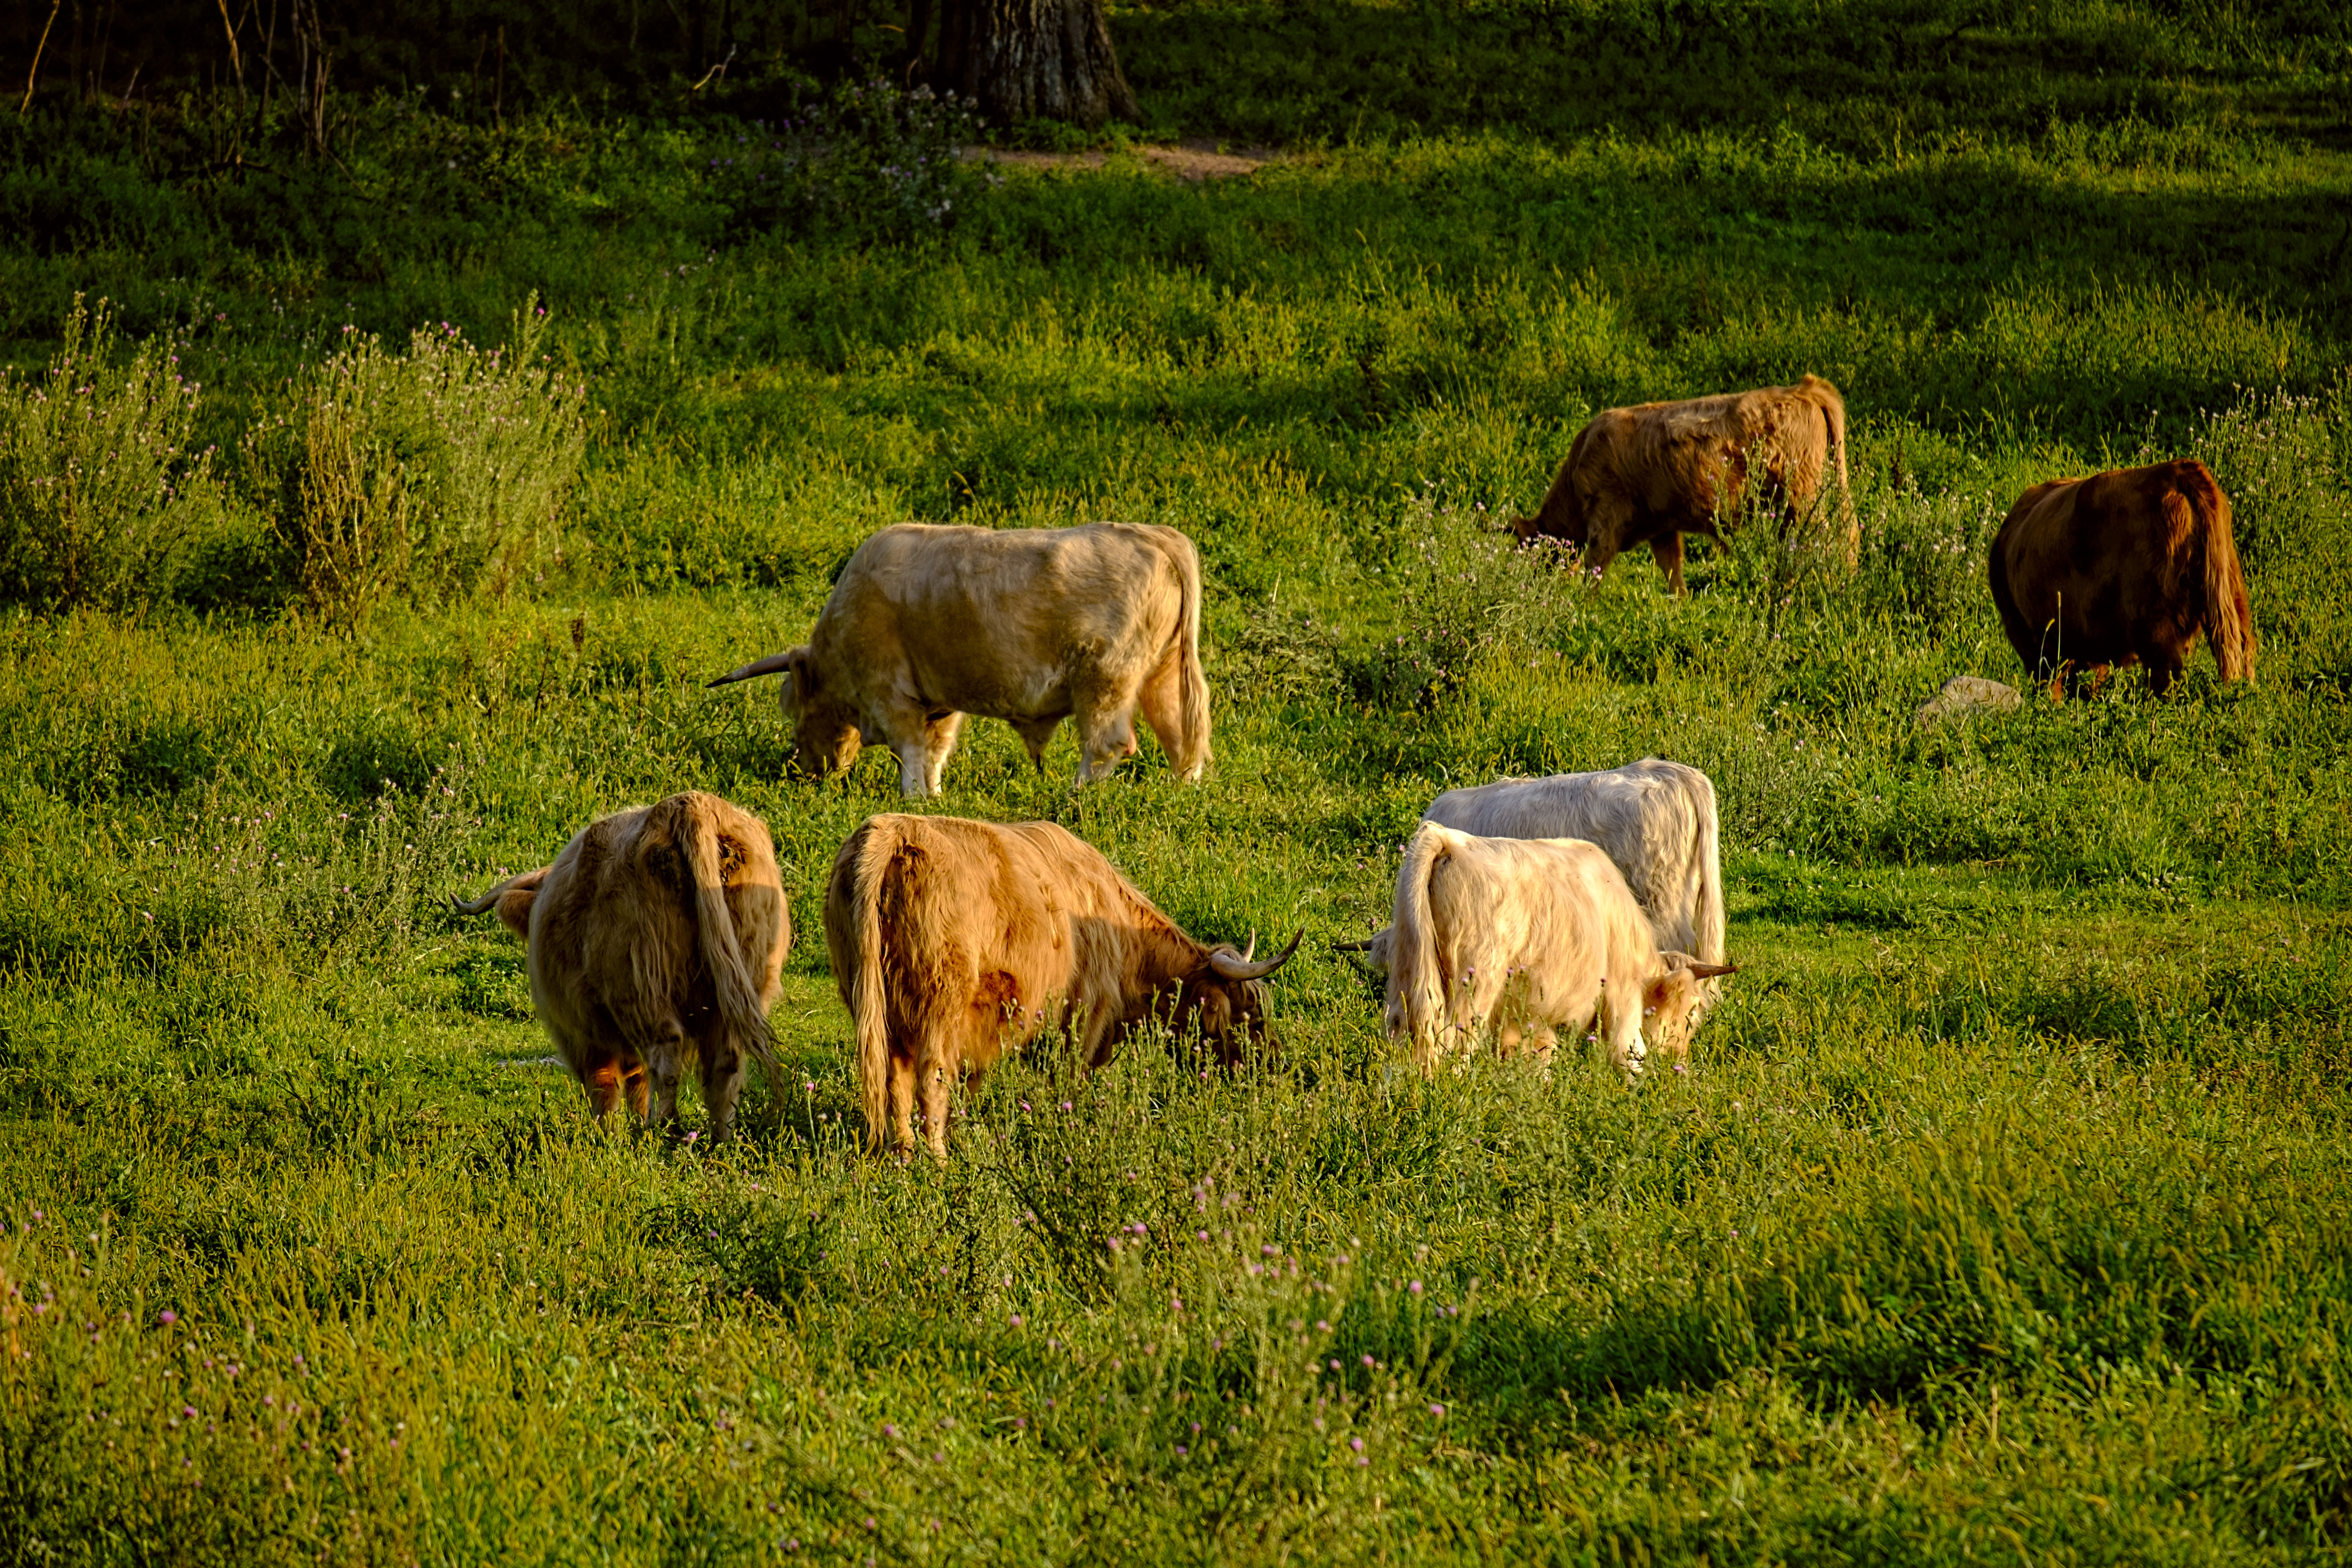 Cattle in the distance